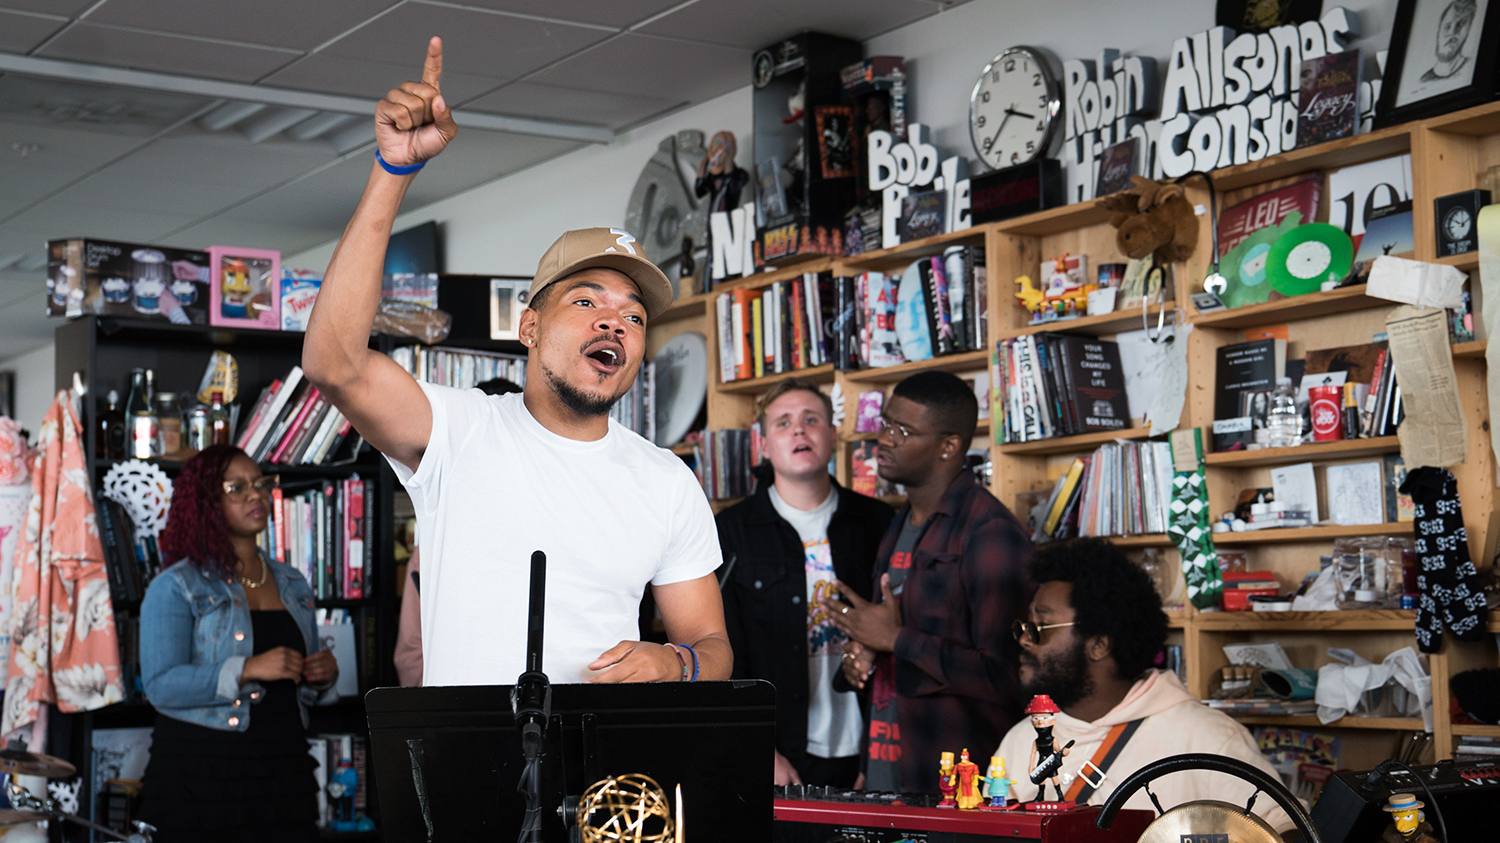 Chance the Rapper absolutely nails this Stevie Wonder cover